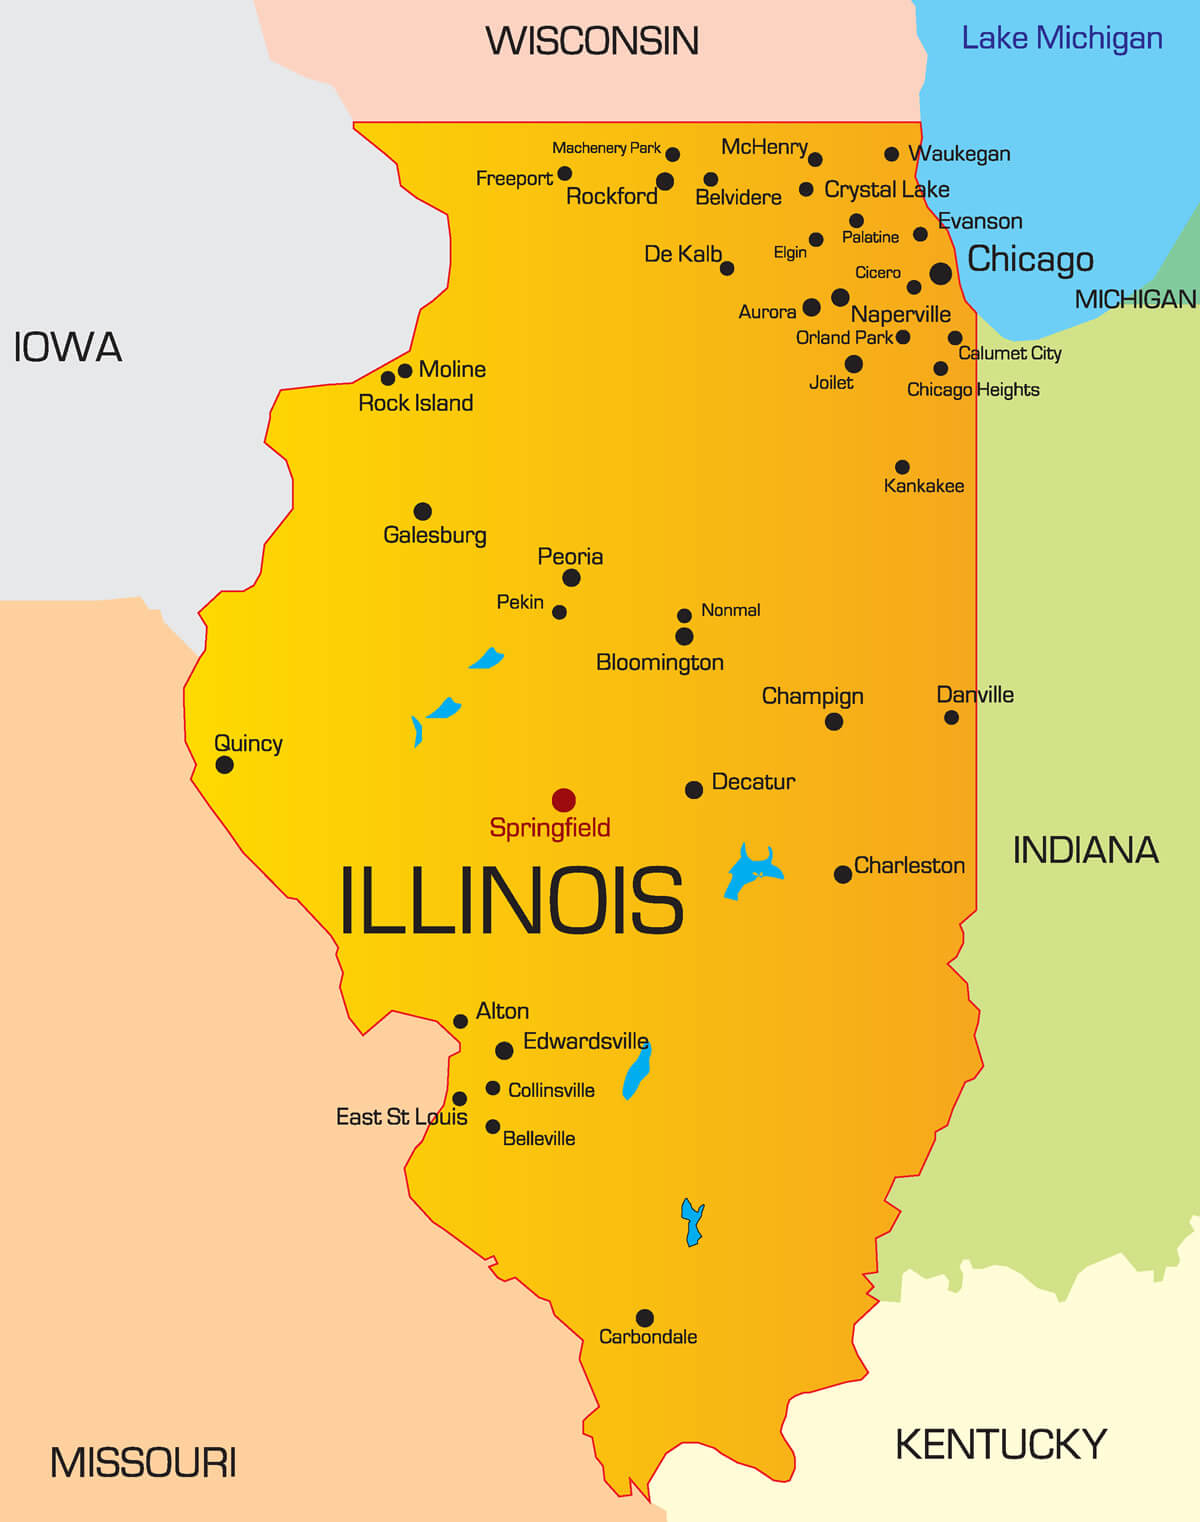 Illinois Map - Guide of the World